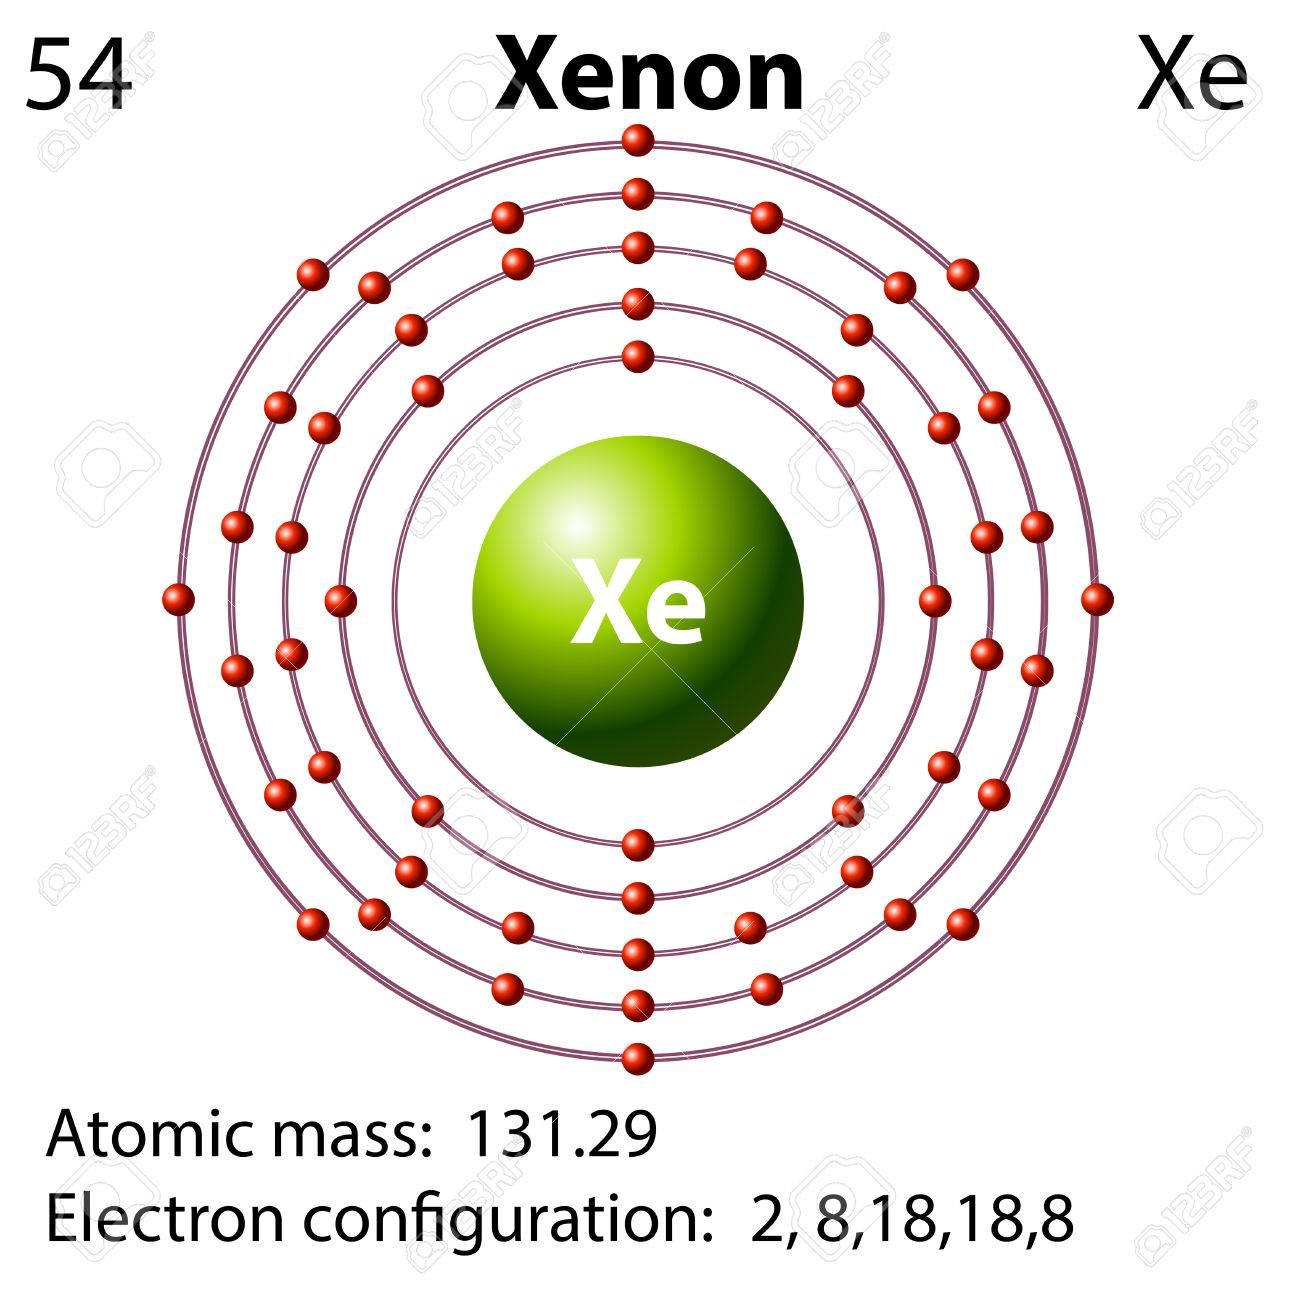 Symbol and electron diagram for xenon illustration royalty free symbol and electron diagram for xenon illustration stock vector 45301277 pooptronica Images